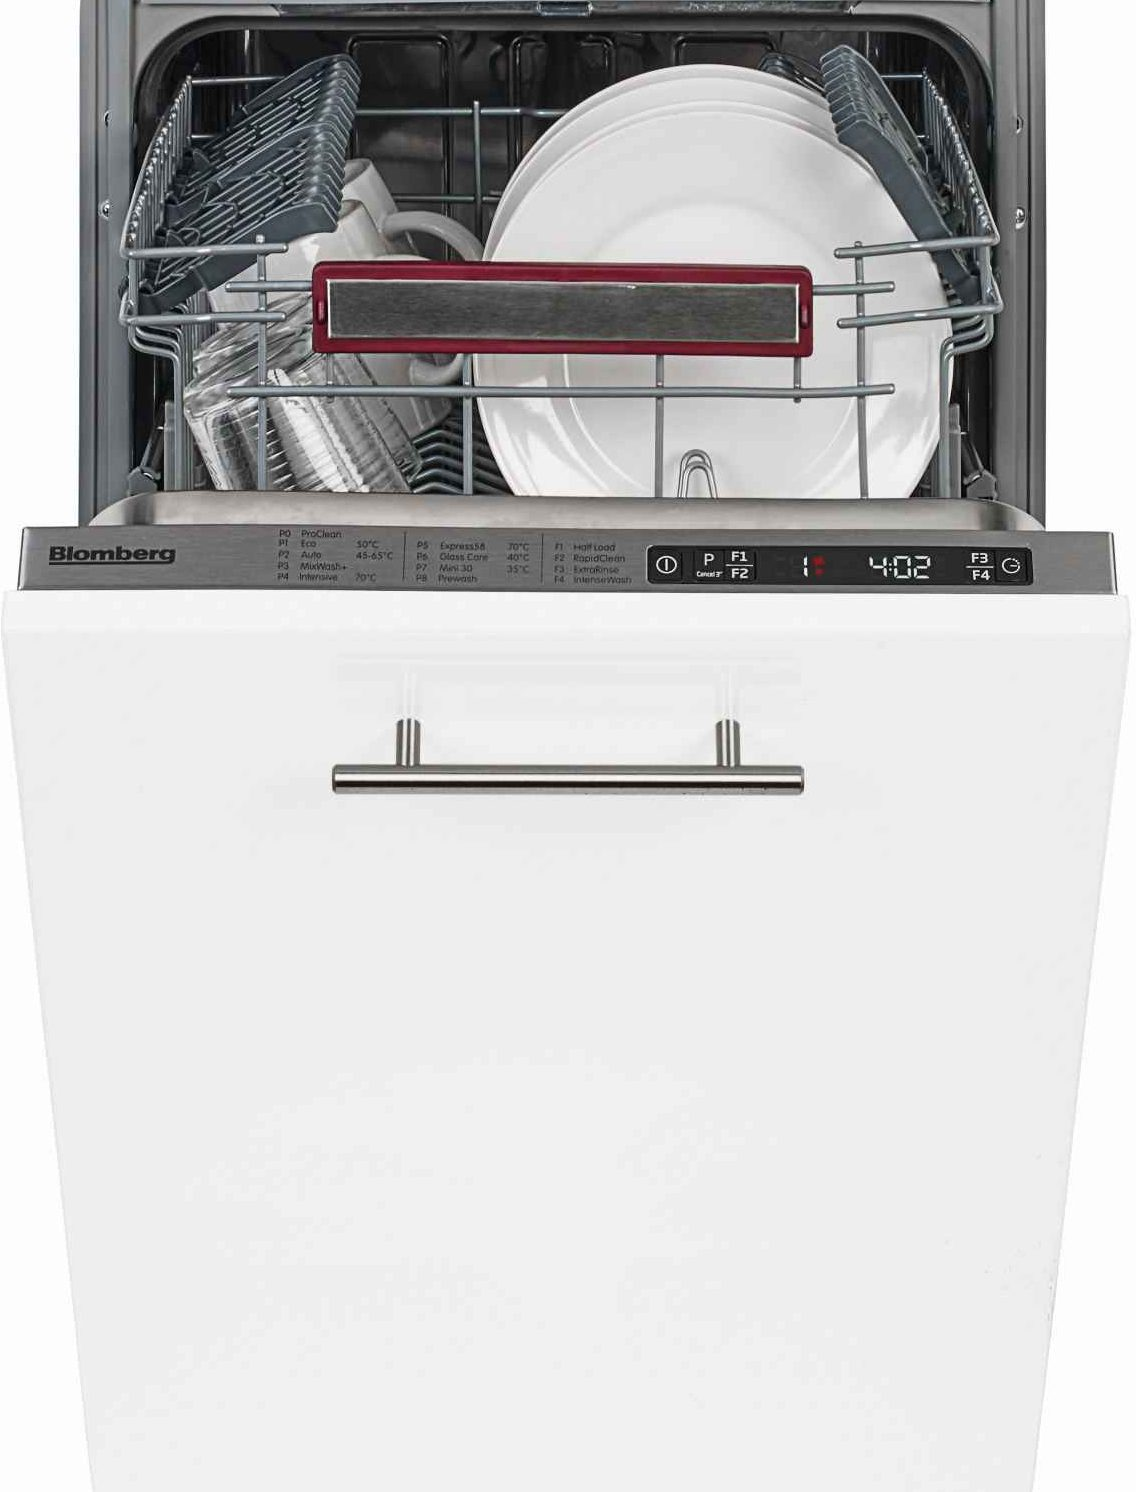 Blomberg LDVS2284 front